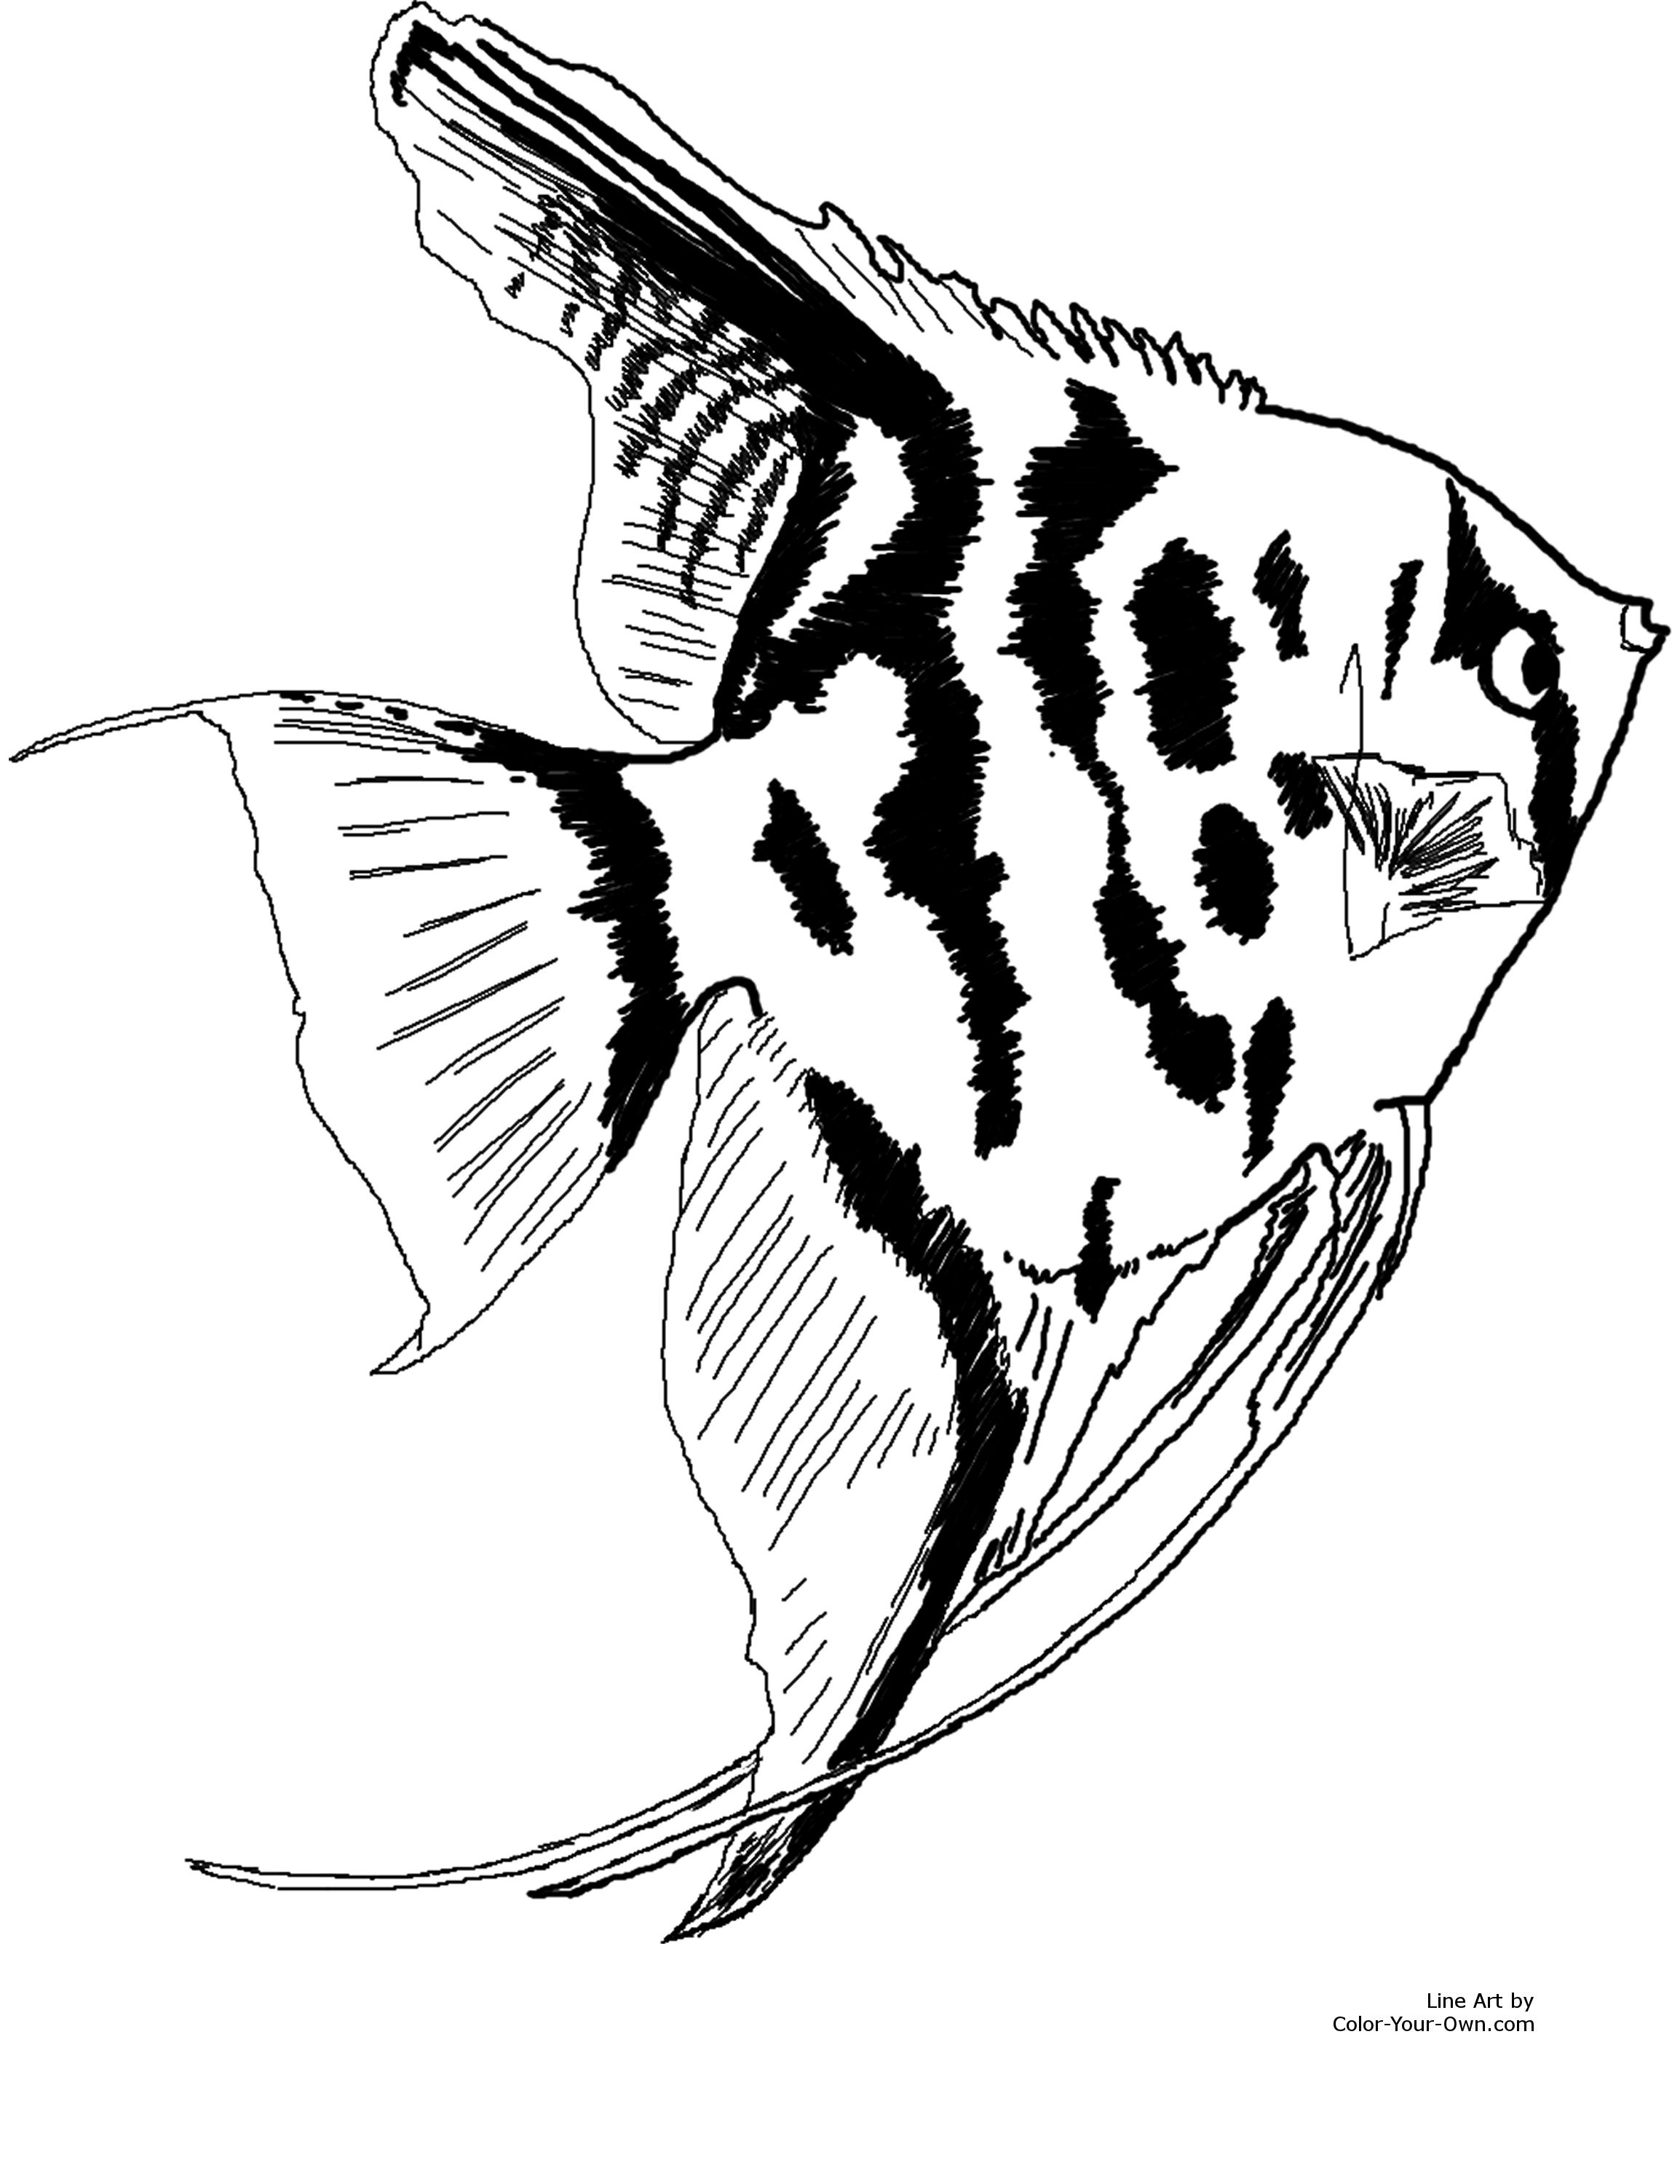 angelfish drawing 20 inspiration angelfish drawing images armelle jewellery angelfish drawing